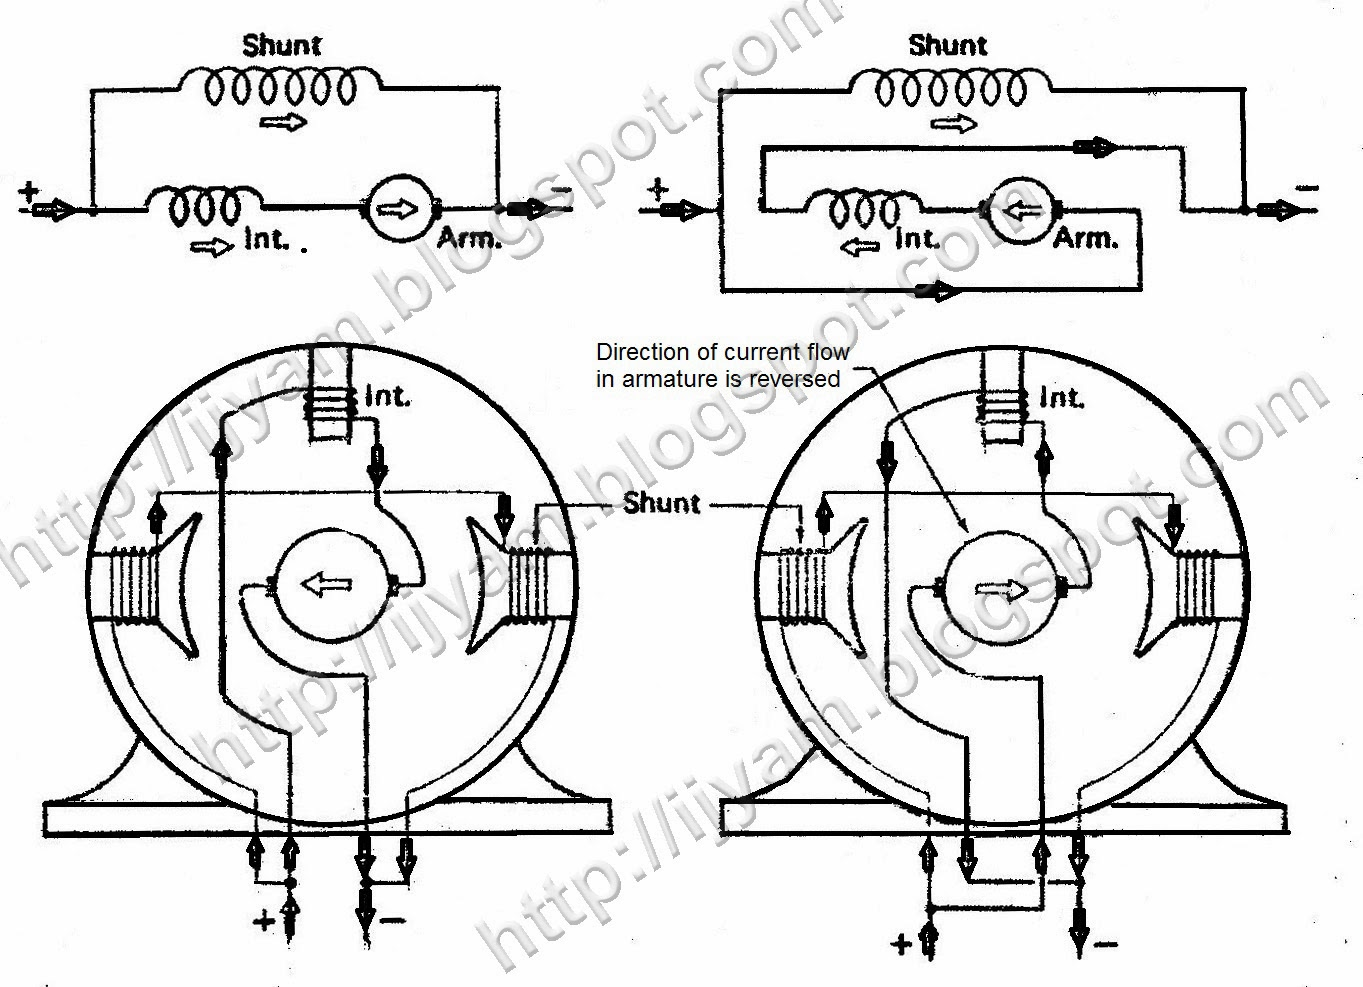 Shunt Compound Motor Wiring Diagram Compress Wiring